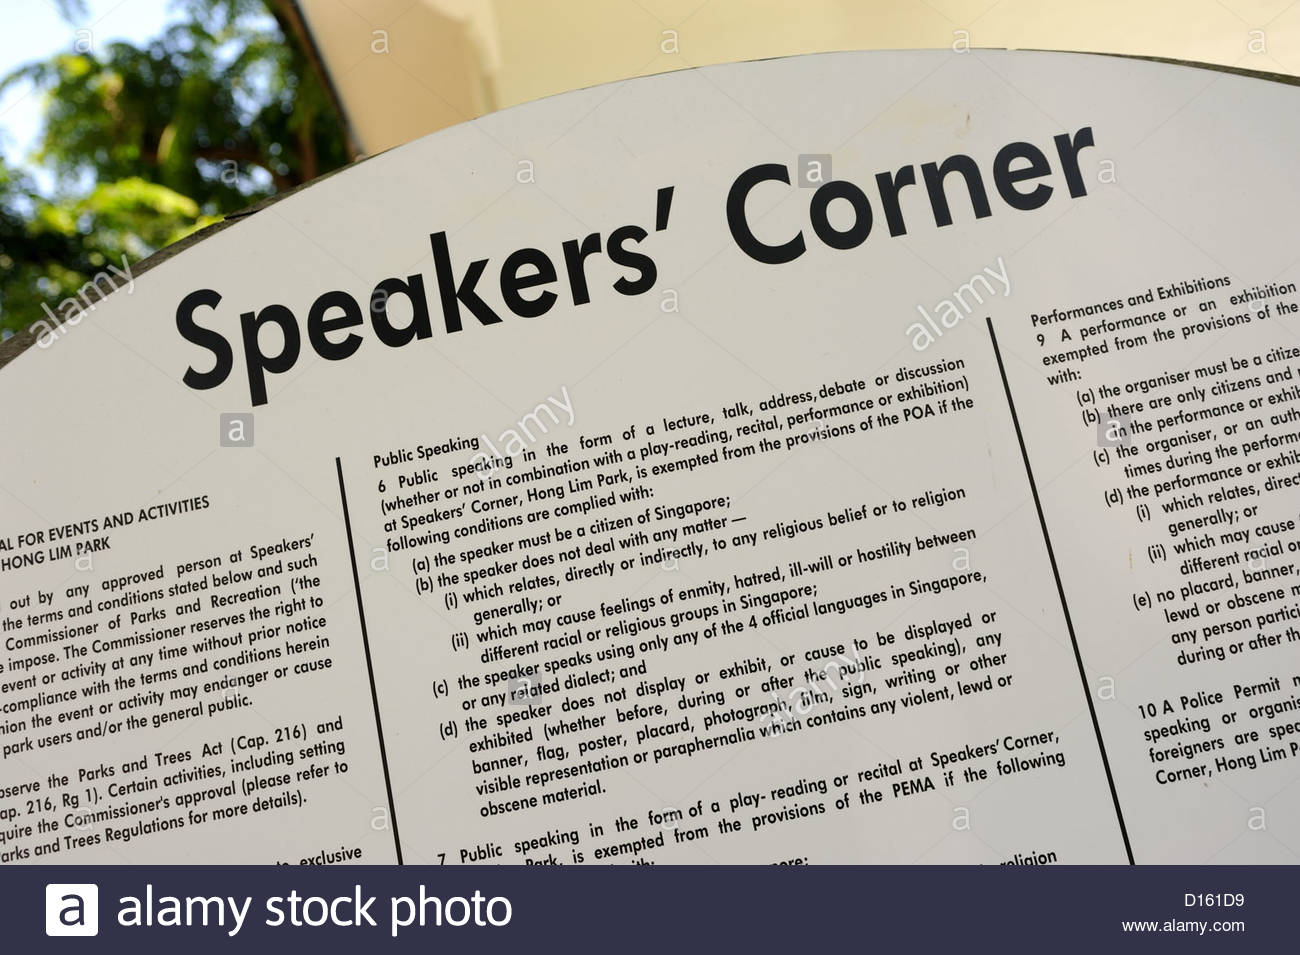 Singapore - Hong Lim Park - Speakers Corner rules and limitations. - Stock Image